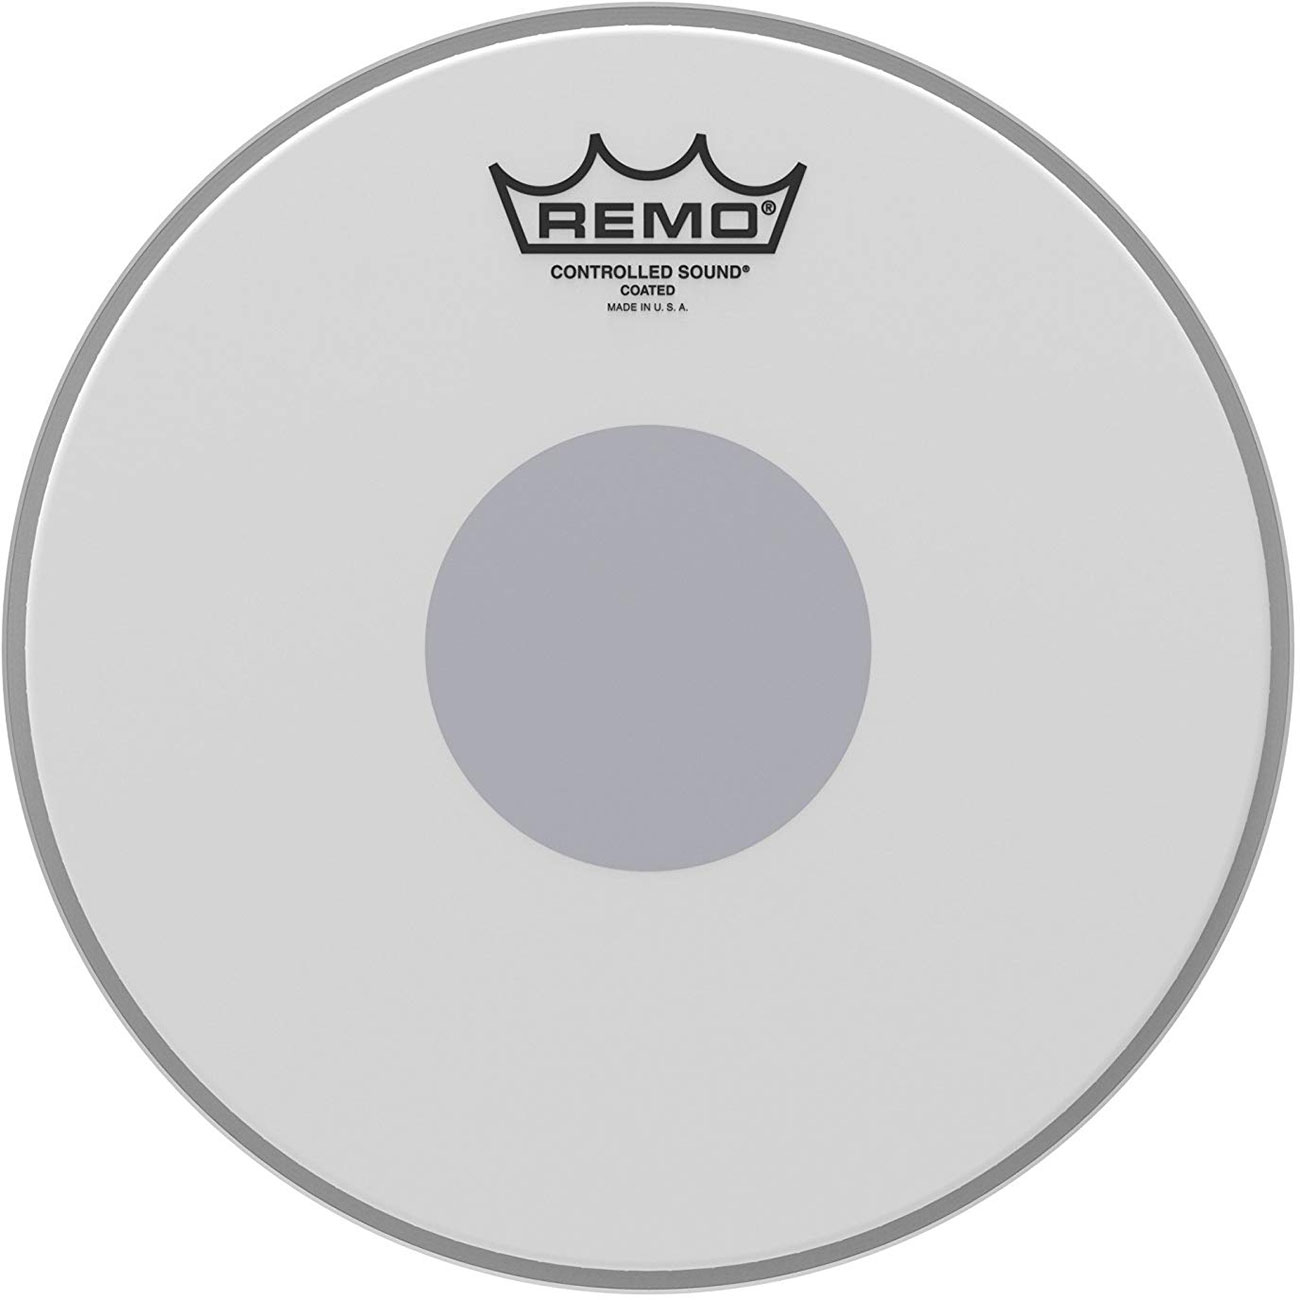 """Remo 16"""" Controlled Sound Coated Drum Head with Black Dot"""